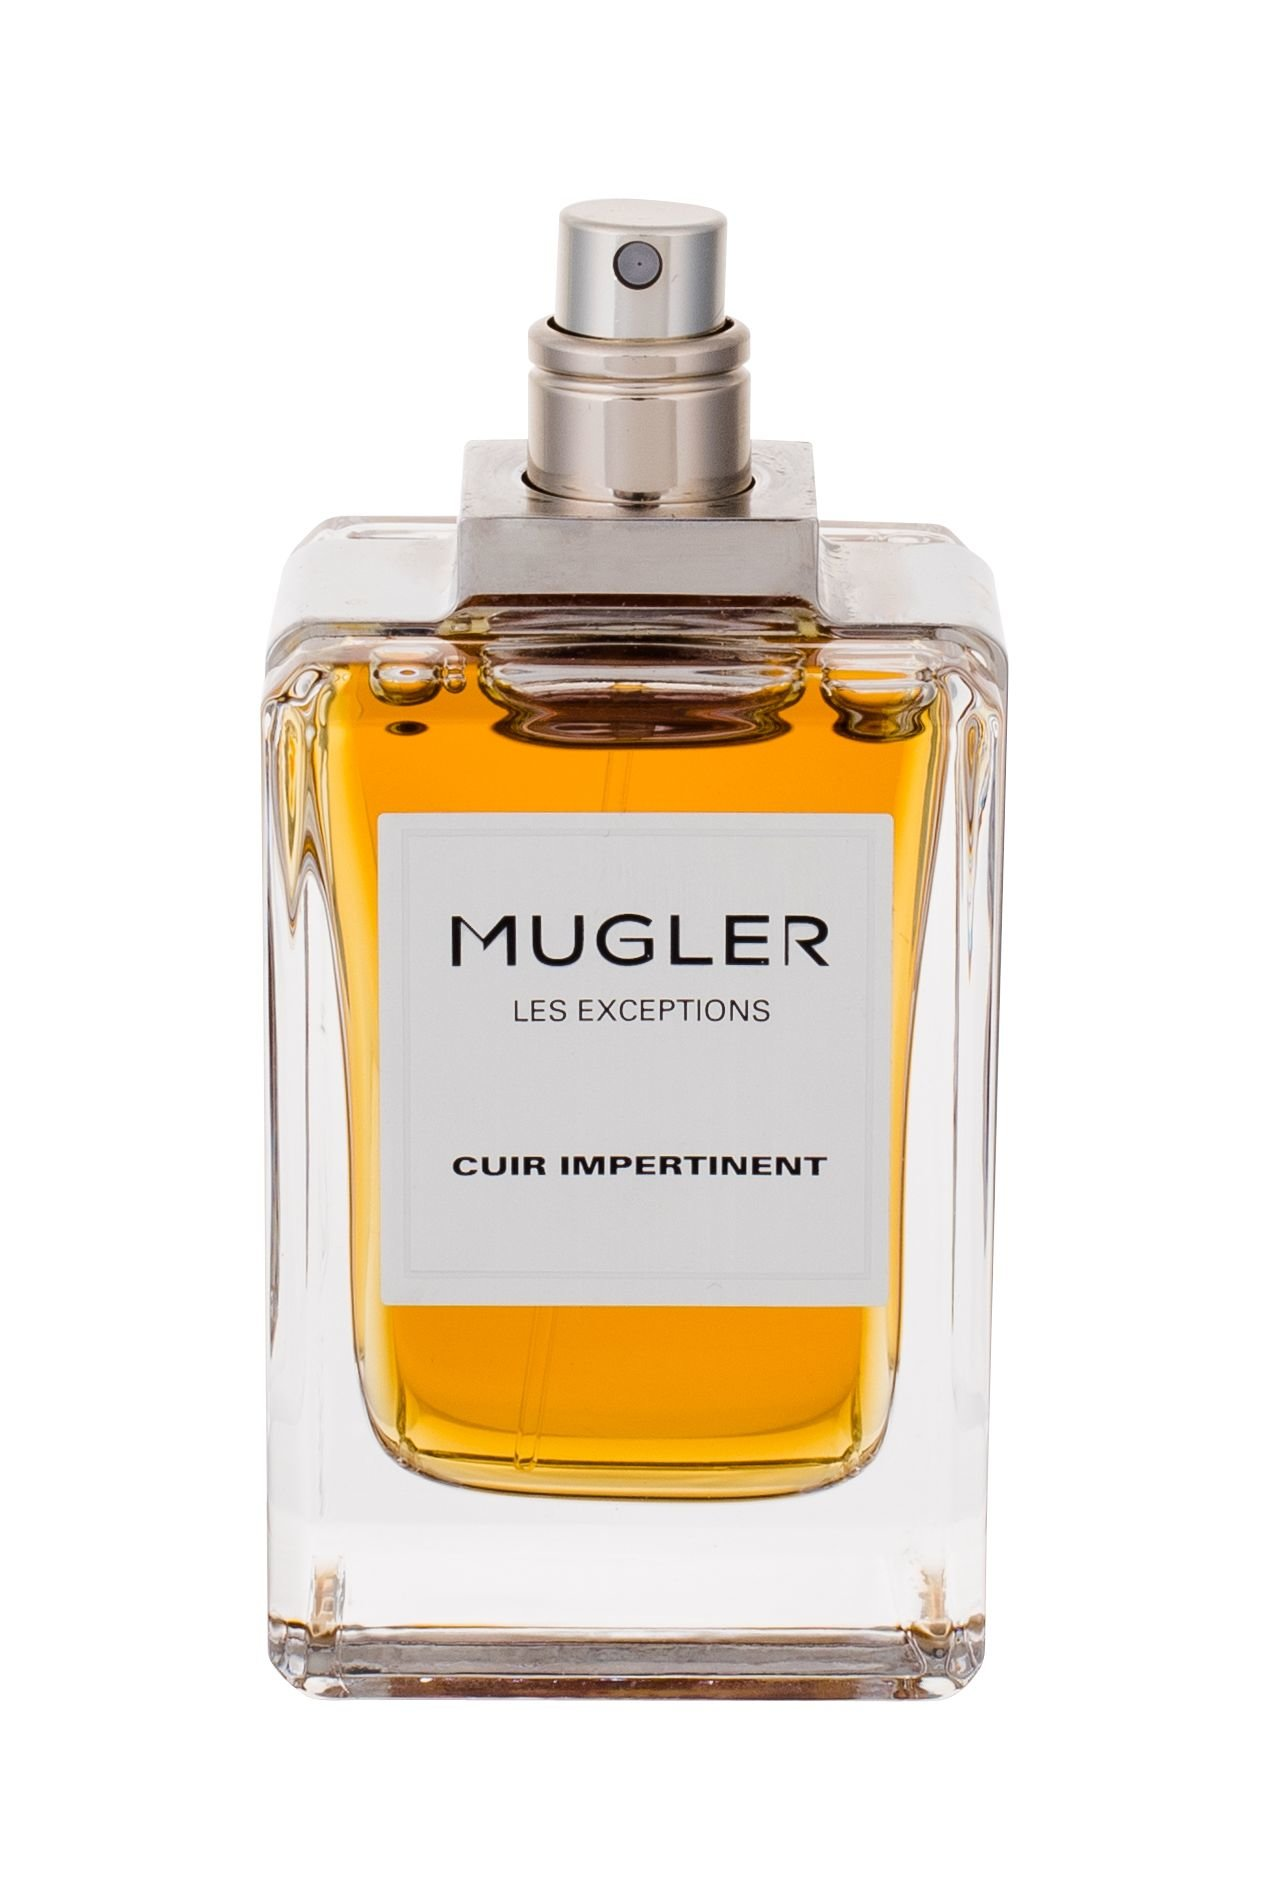 Thierry Mugler Les Exceptions Cuir Impertinent EDP 80ml